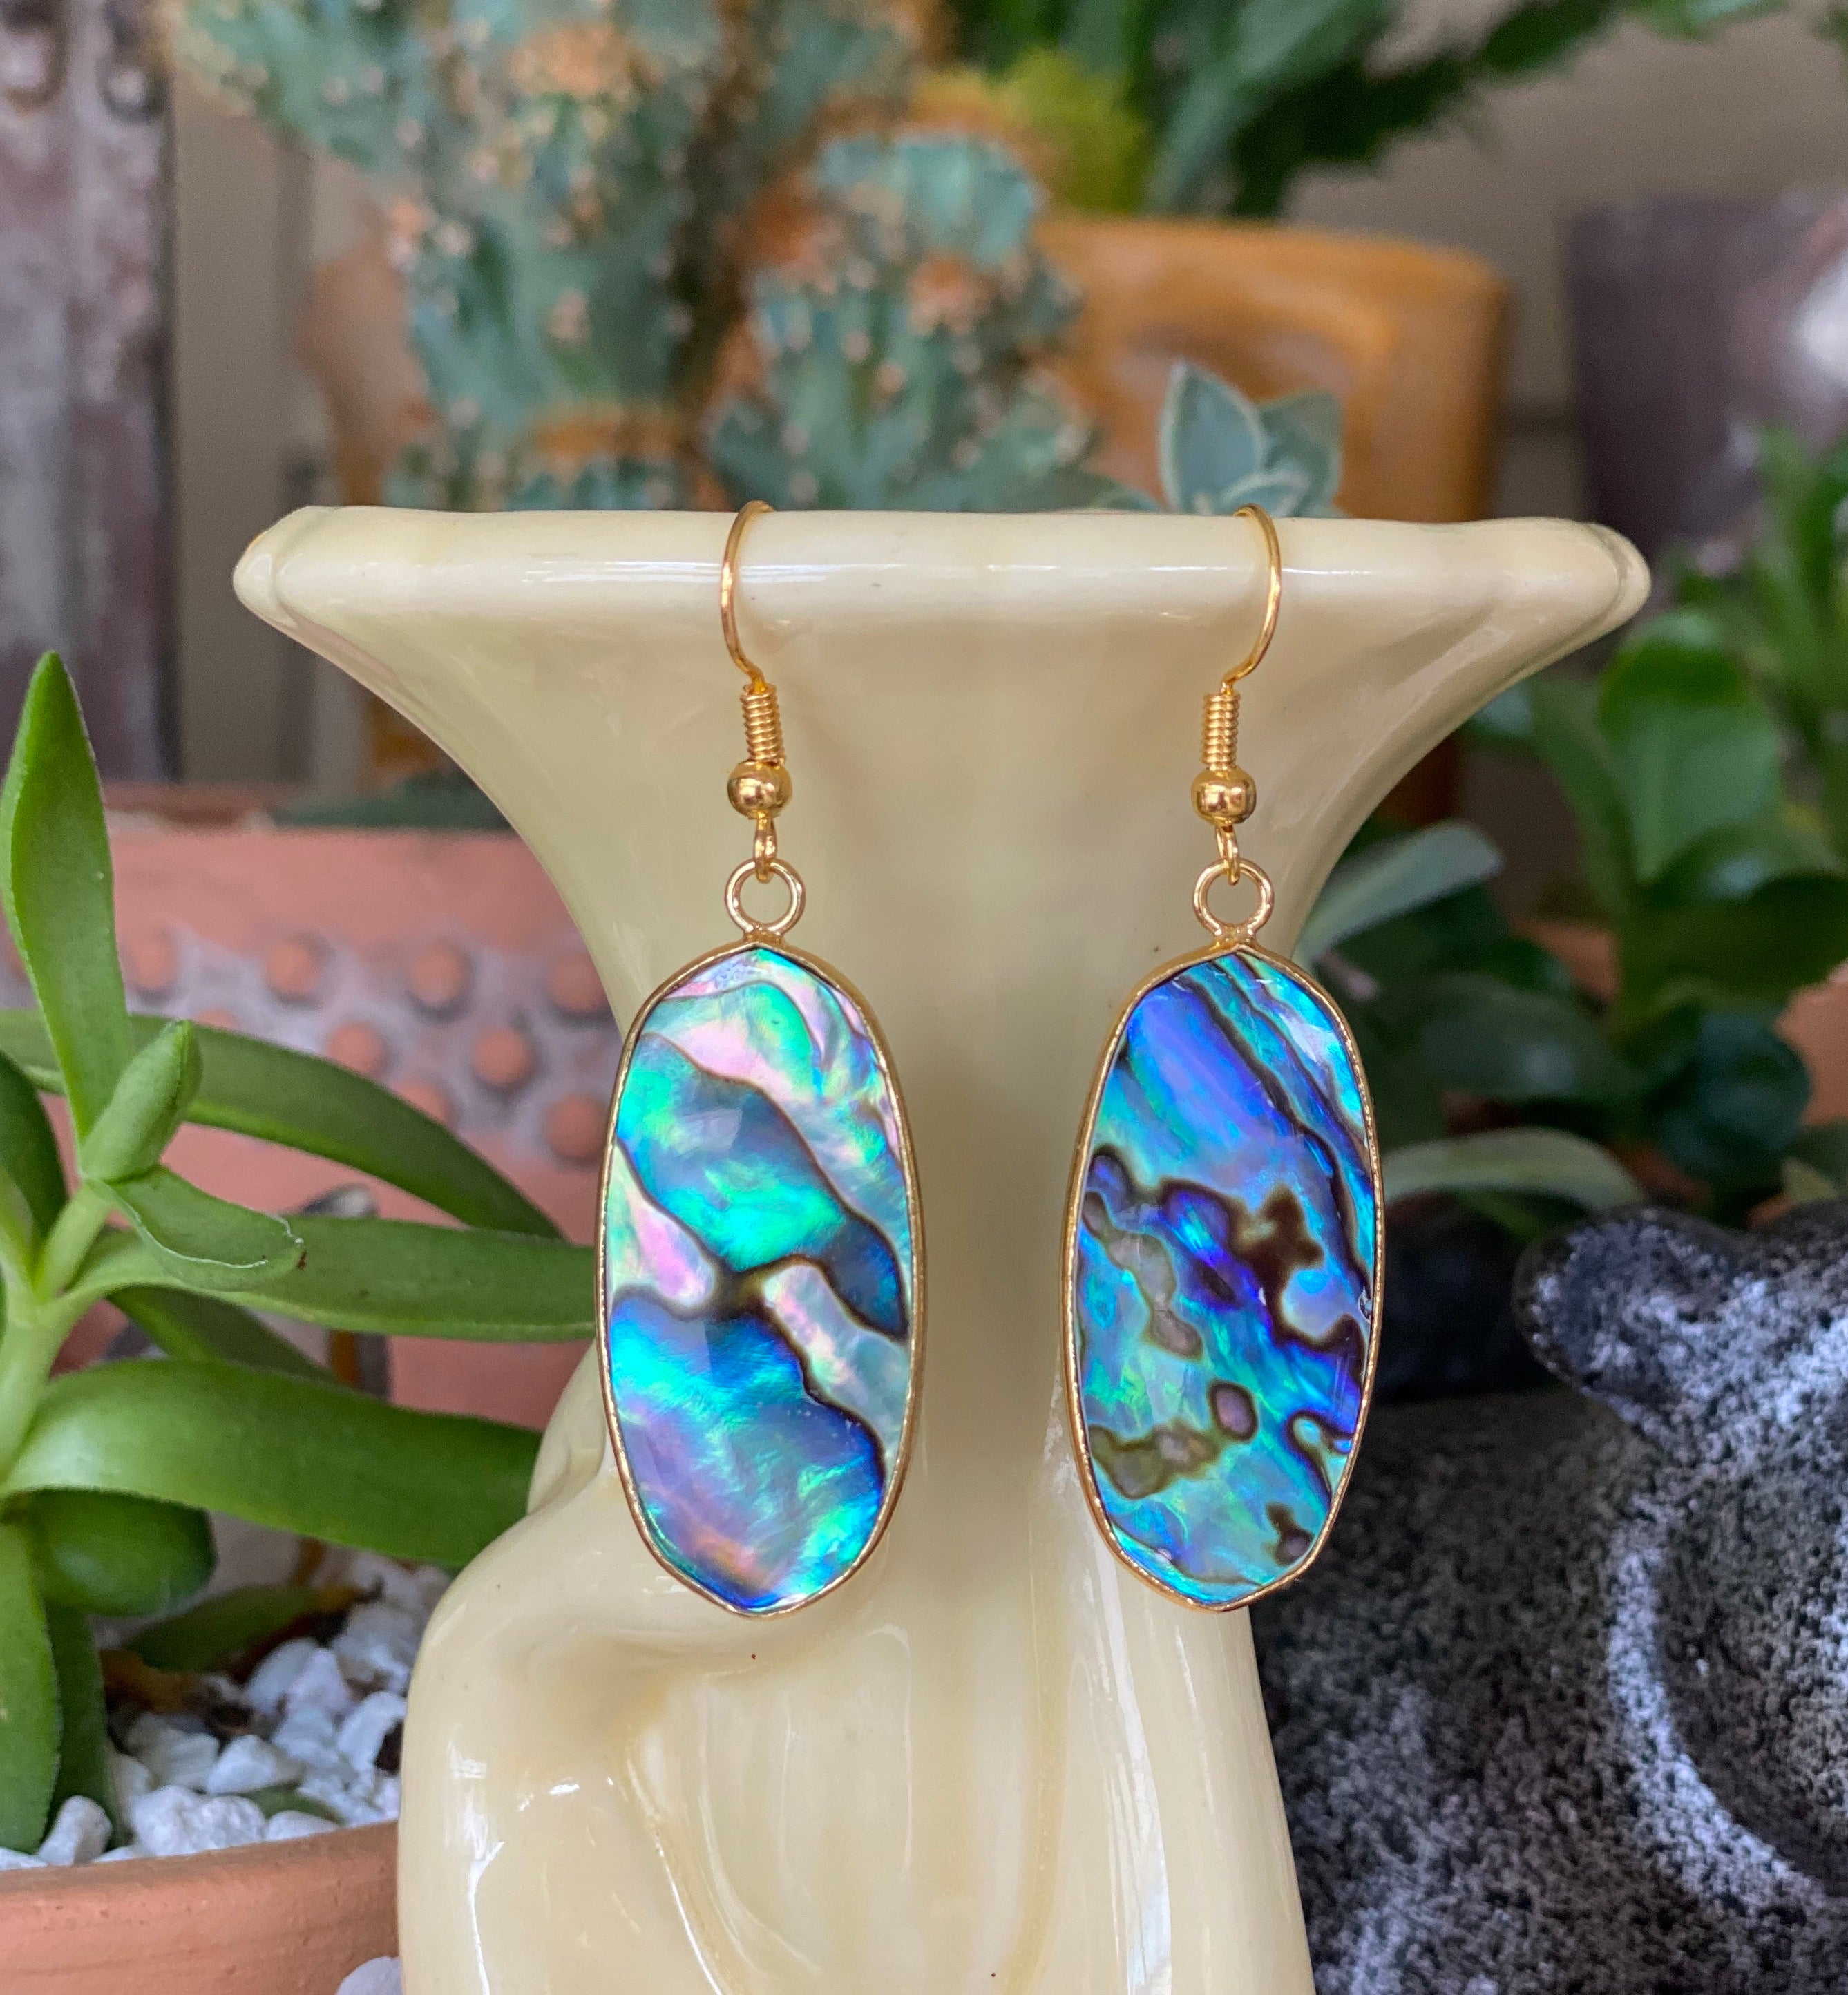 Jewelry, abalone earrings